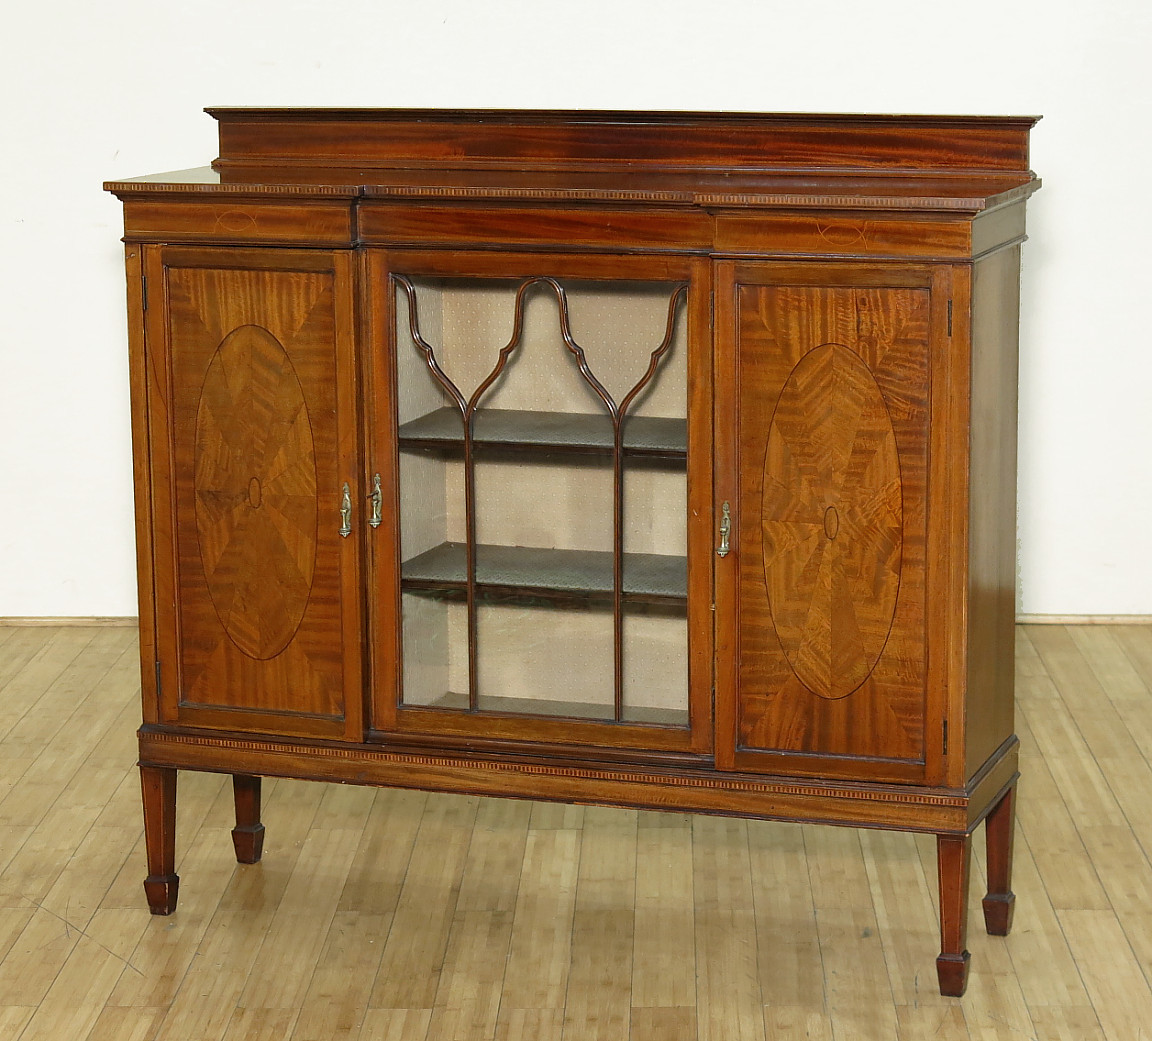 #793E12 Vintage Mahogany Curio Display Cabinet W Side X Side  with 1152x1041 px of Recommended Mahogany Display Cabinets With Glass Doors 10411152 save image @ avoidforclosure.info